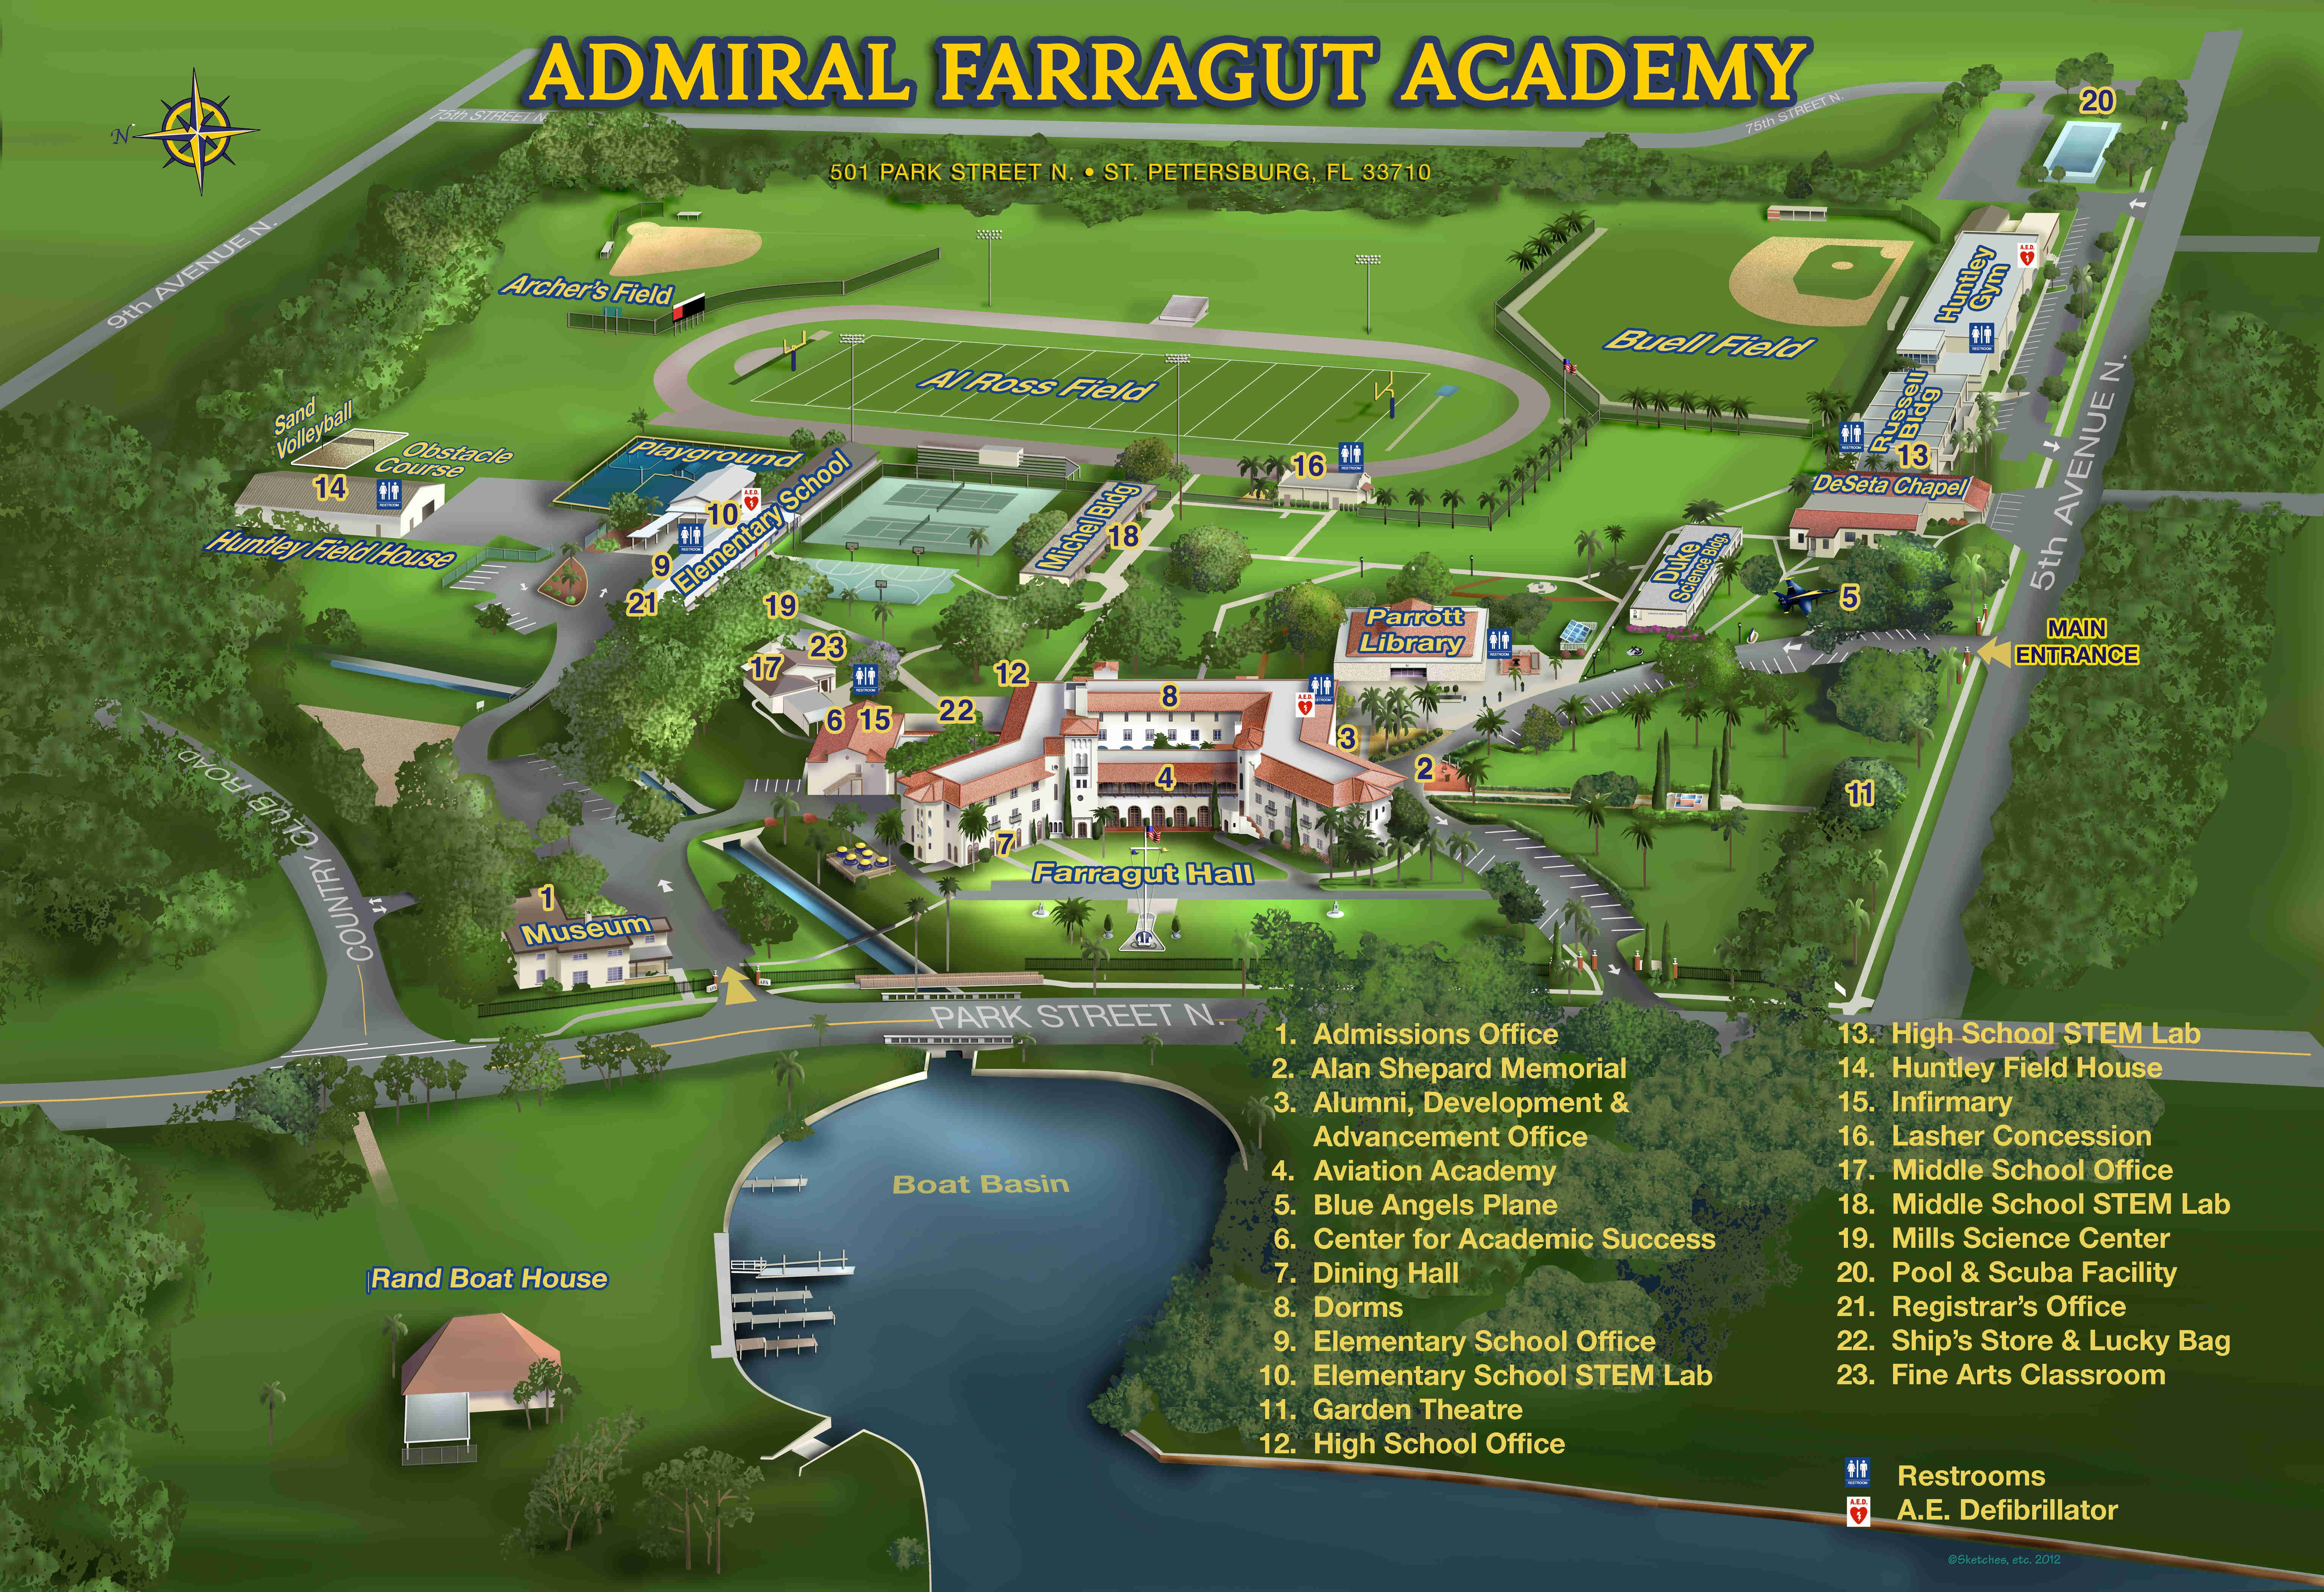 Homestead High School Campus Map.View The Admiral Farragut Academy Campus Map In St Petersburg Fl